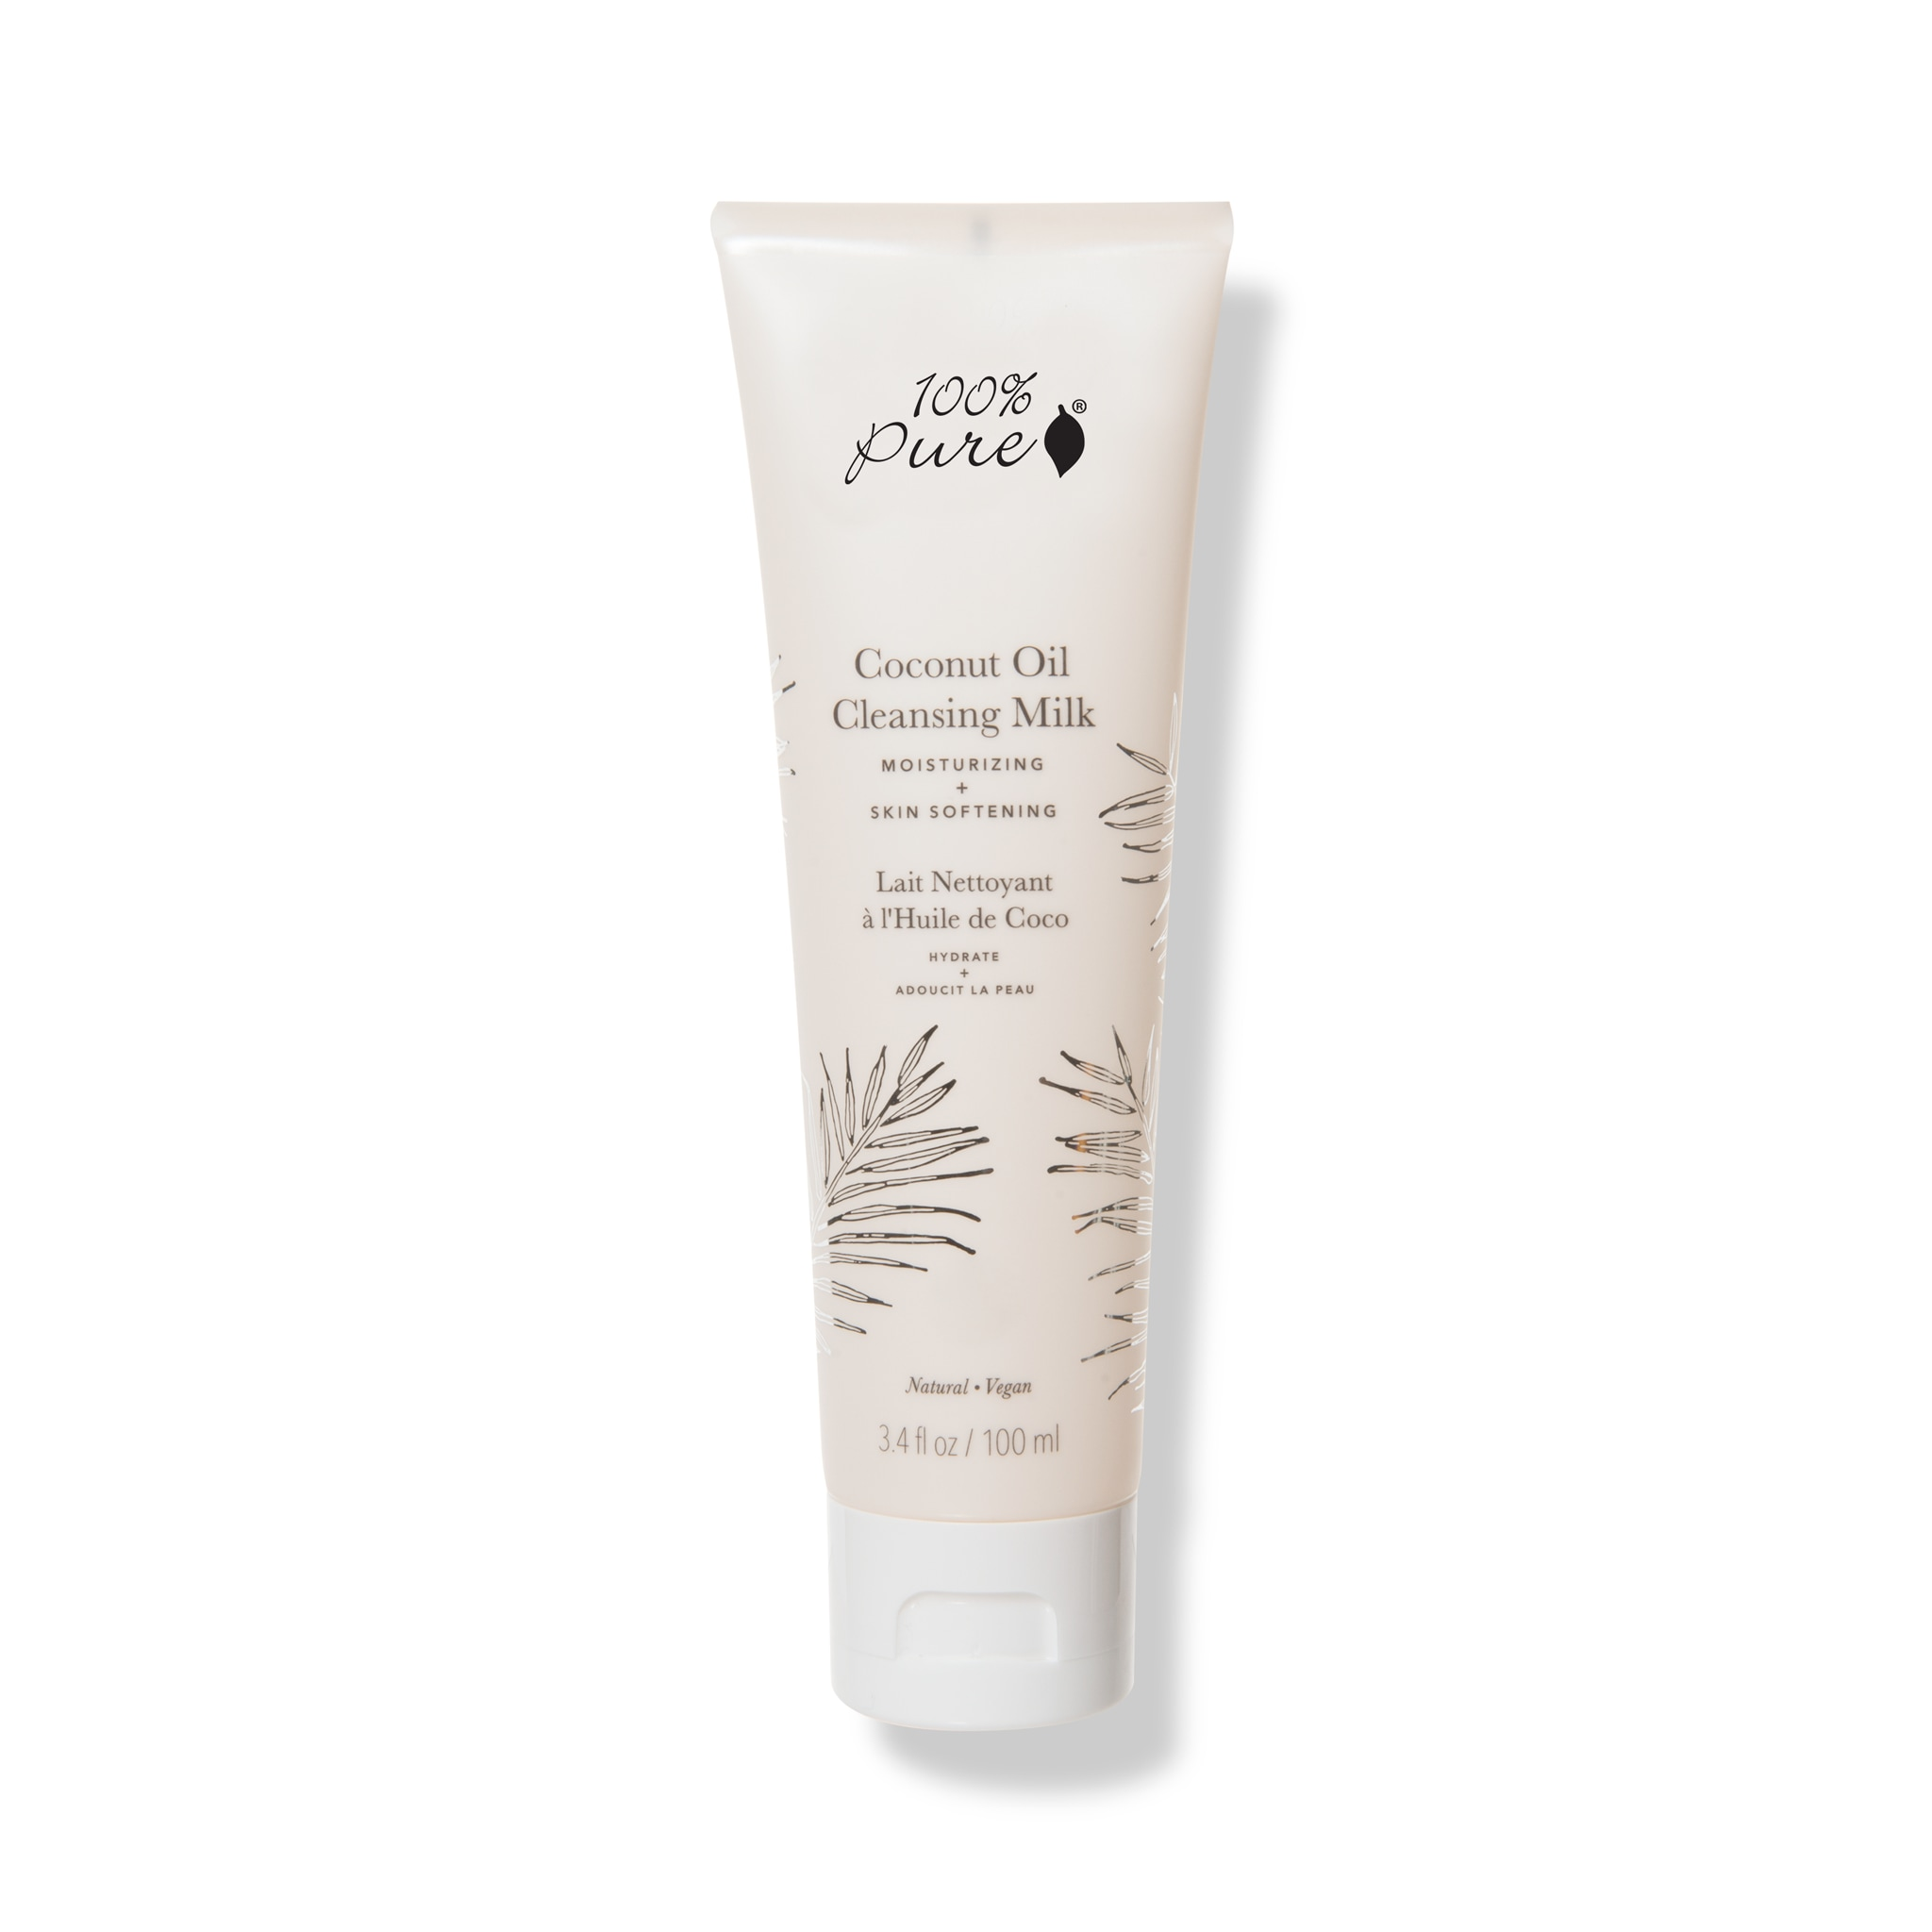 Product Grid - Coconut Oil Cleansing Milk